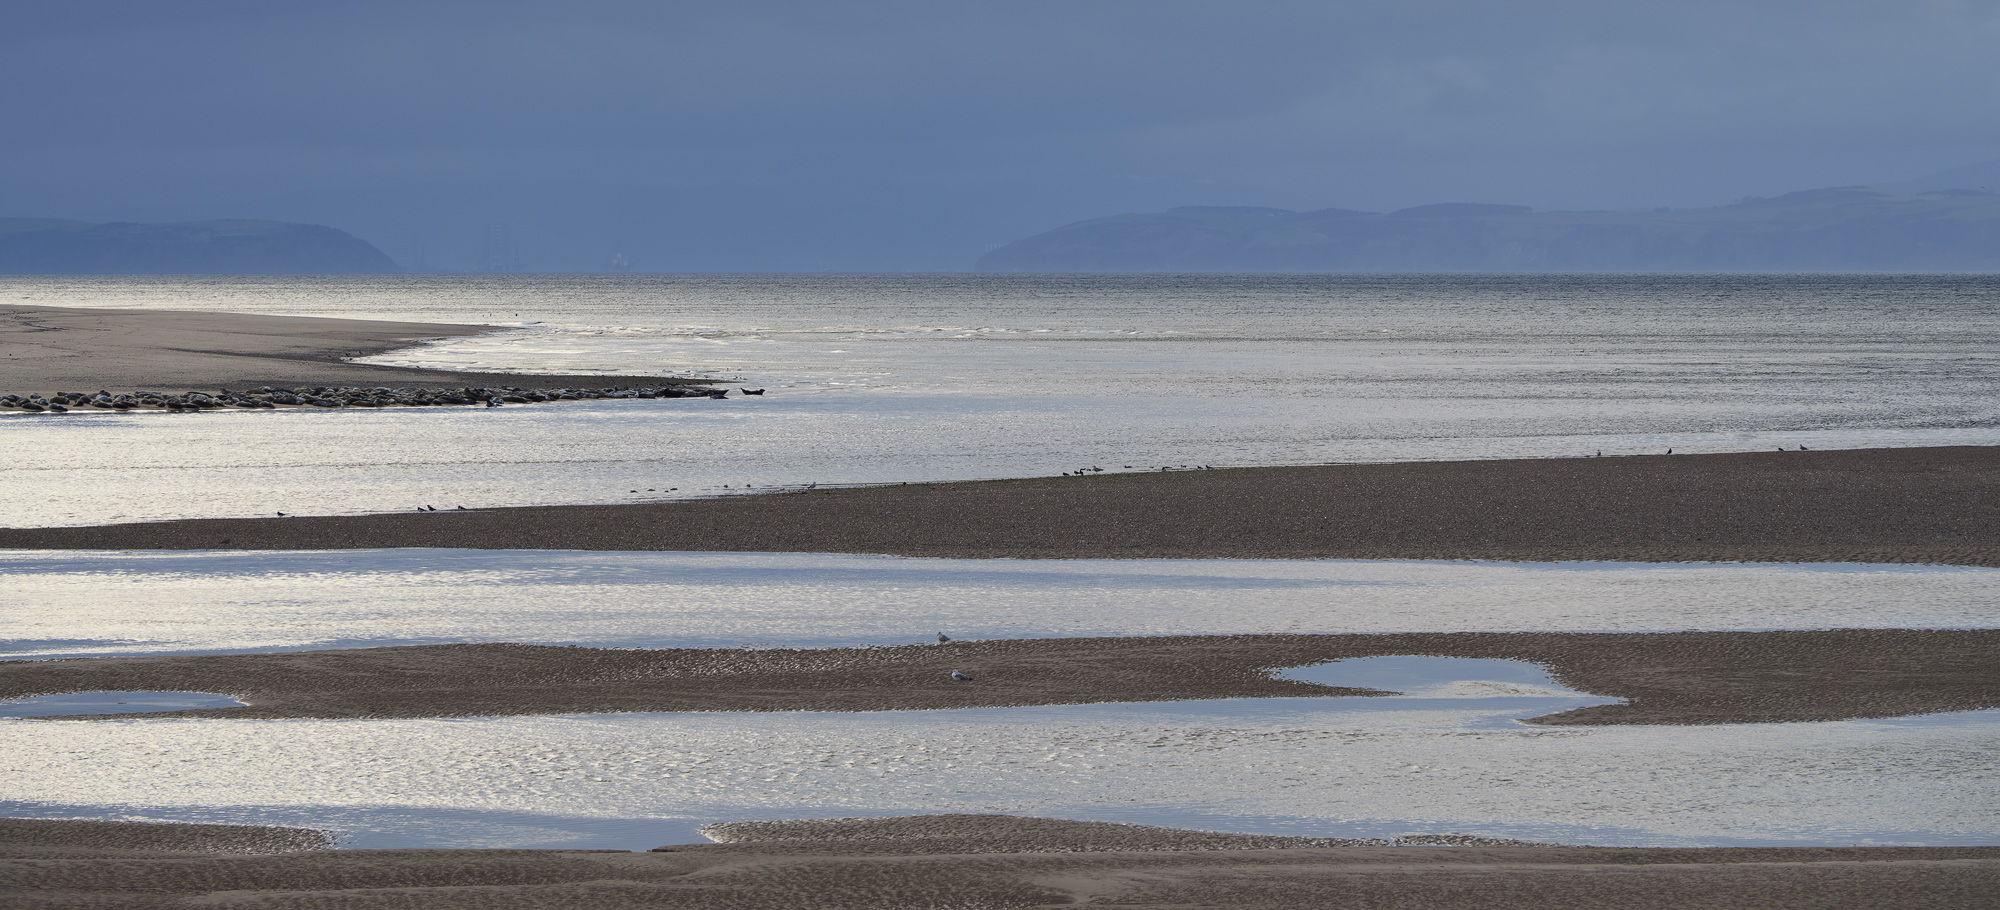 A high viewpoint from the sand dunes at Findhorn flattened perspective and created pleasing patterns of sand and water.